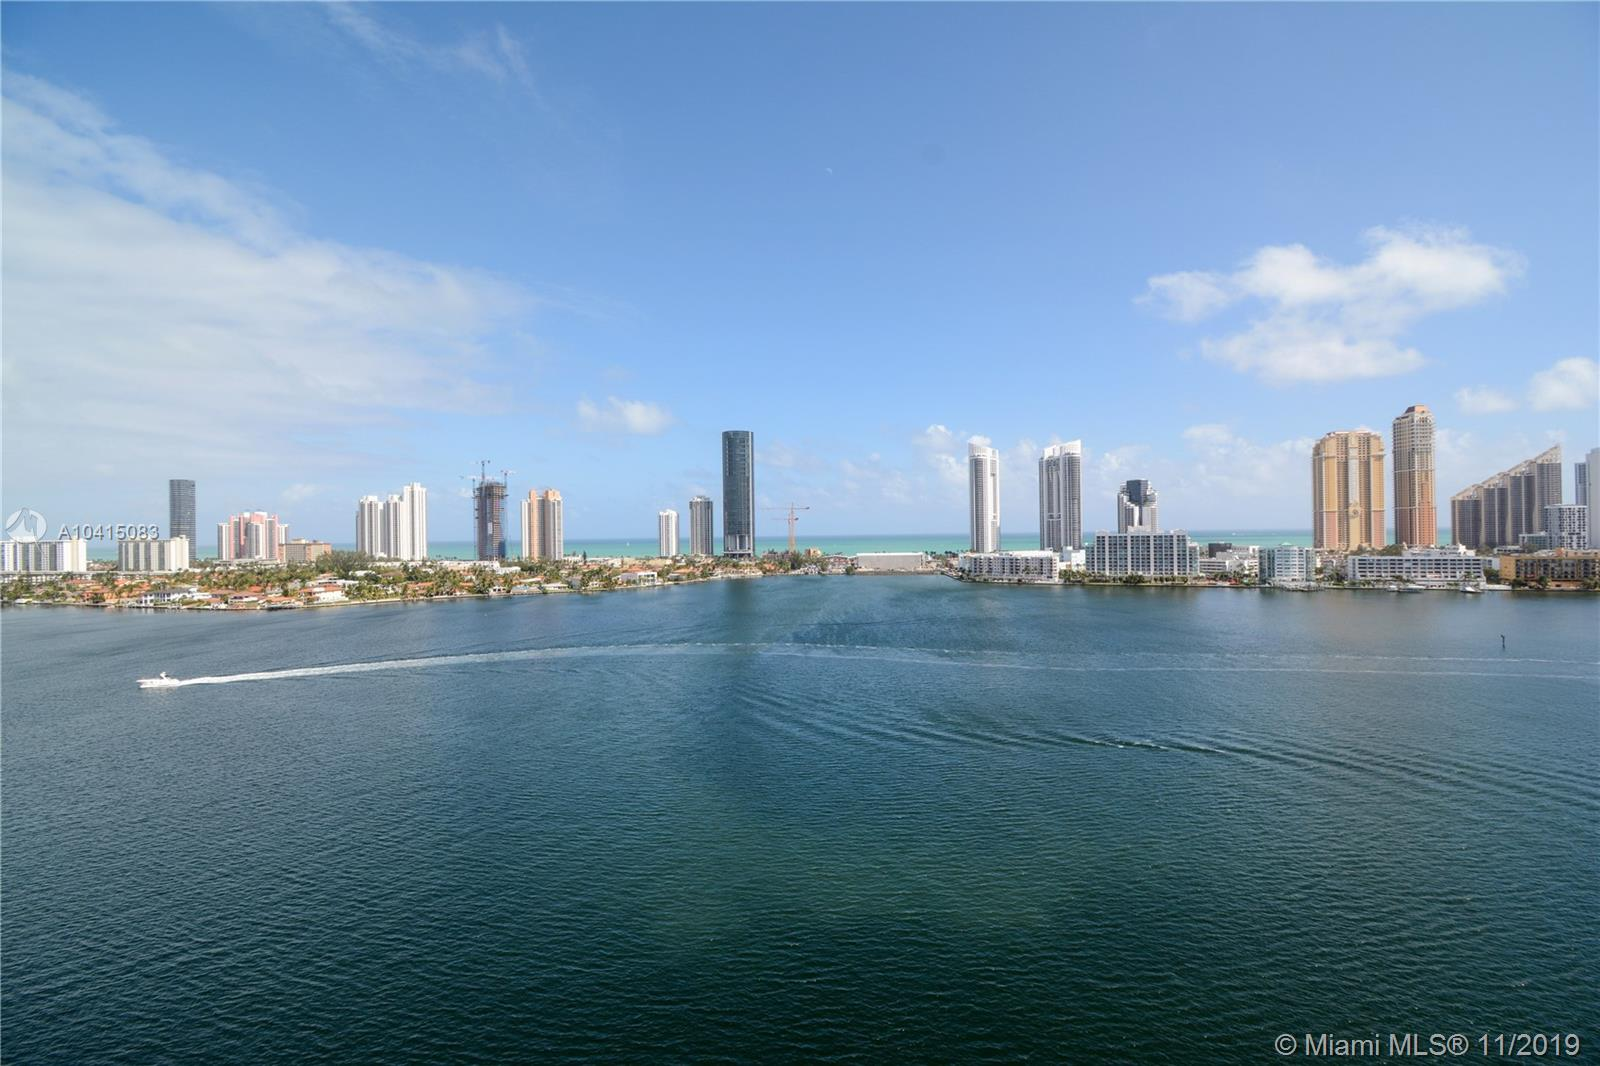 5000 Island Estates Dr # 1206, Aventura, Florida 33160, 3 Bedrooms Bedrooms, ,5 BathroomsBathrooms,Residential,For Sale,5000 Island Estates Dr # 1206,A10415083